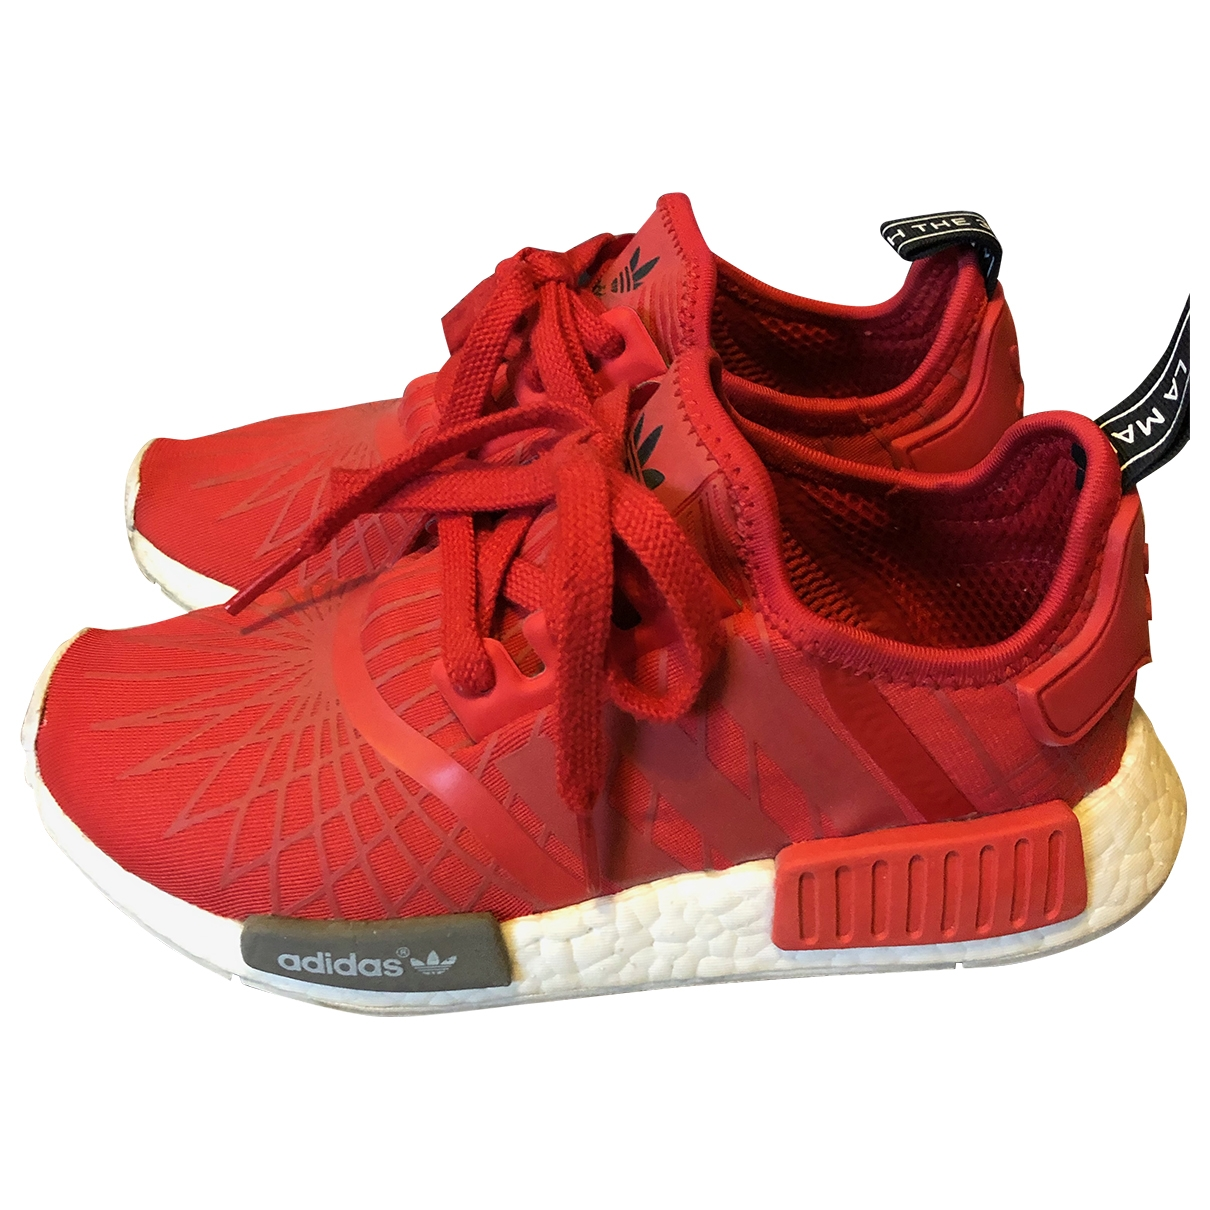 Adidas Nmd Red Trainers for Women 3.5 UK